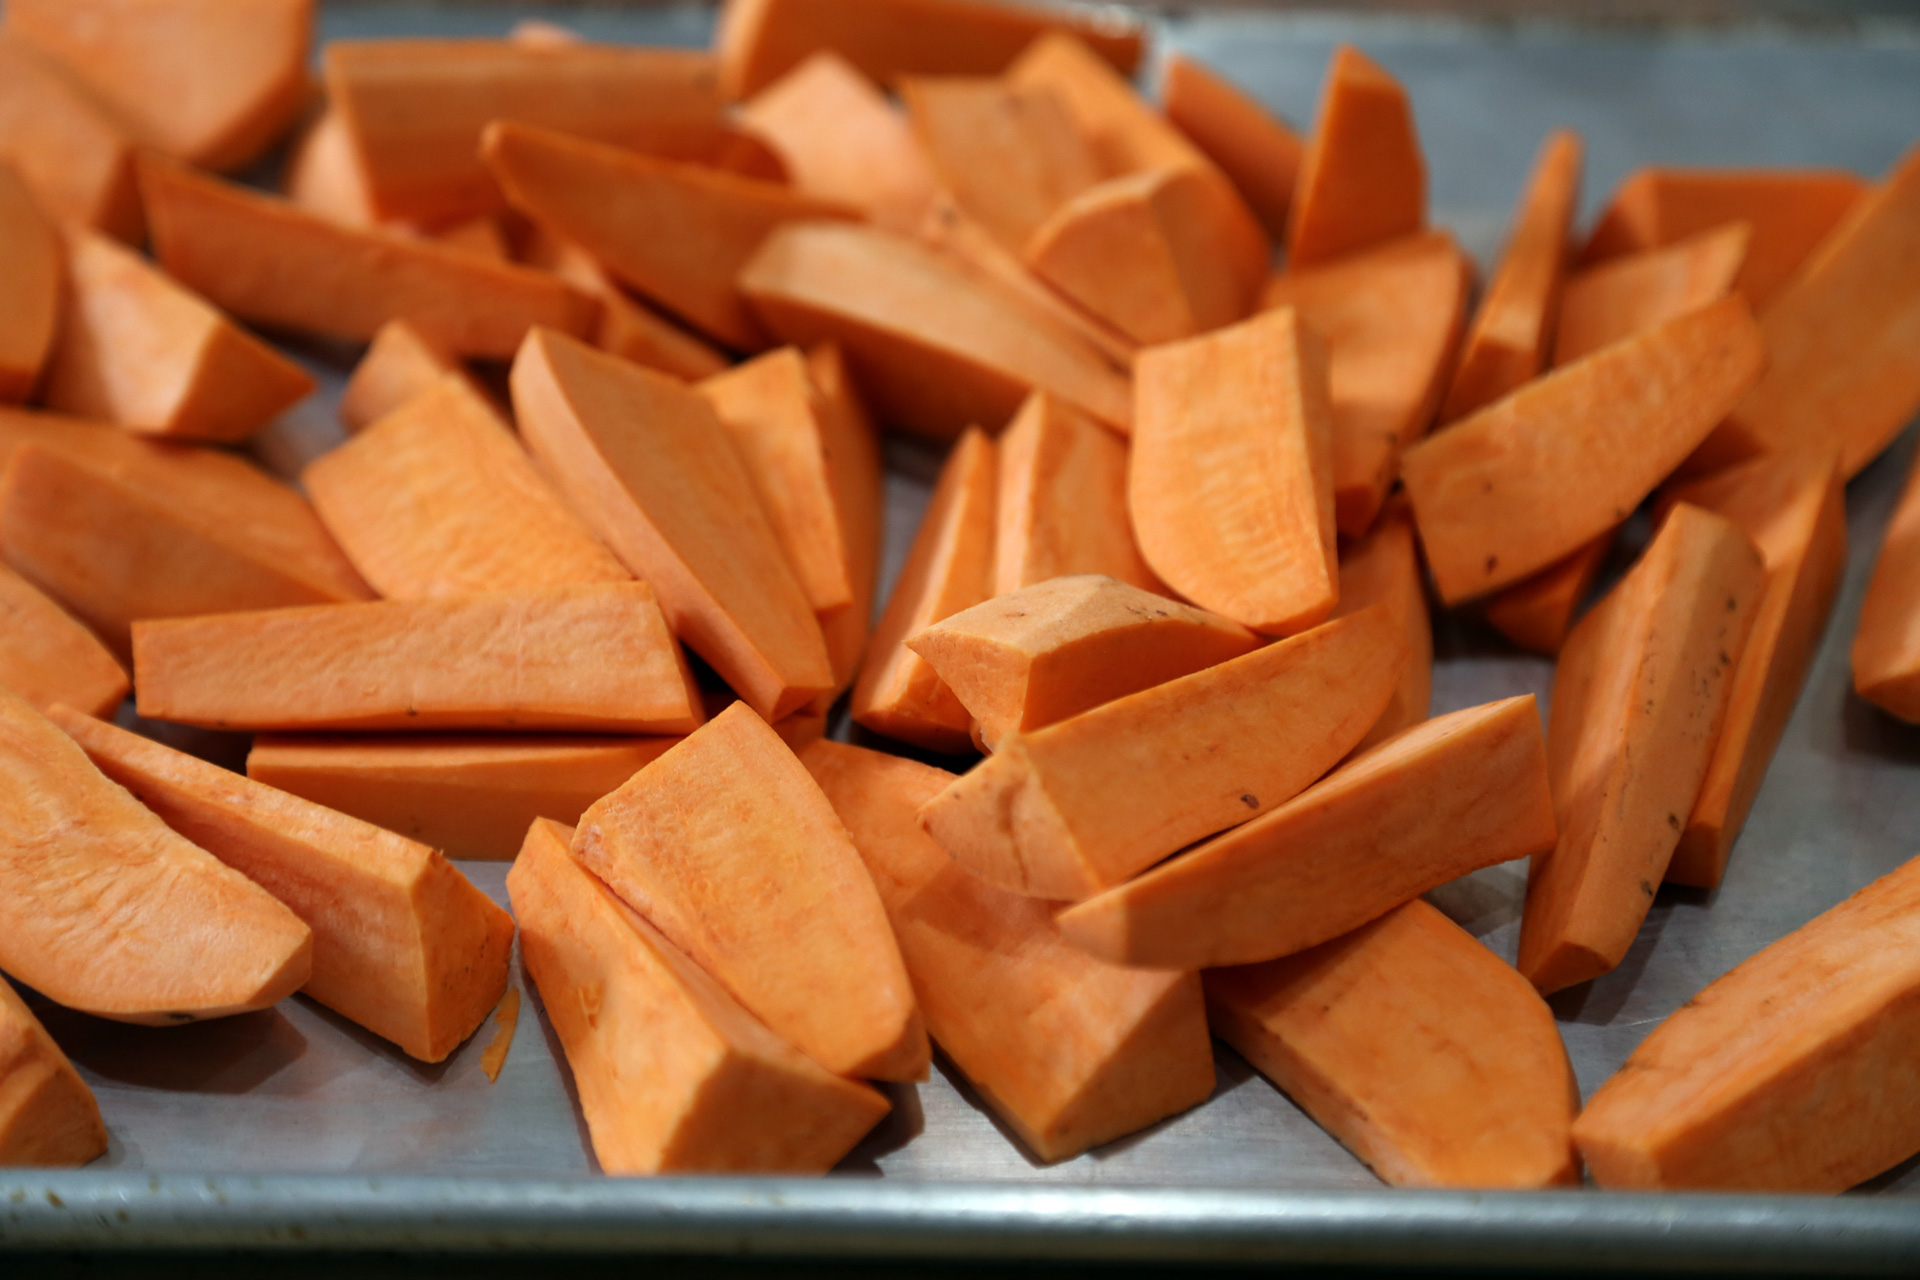 Cut the yams in half crosswise, then cut into equal-sized wedges, each about 1 by 3 inches.